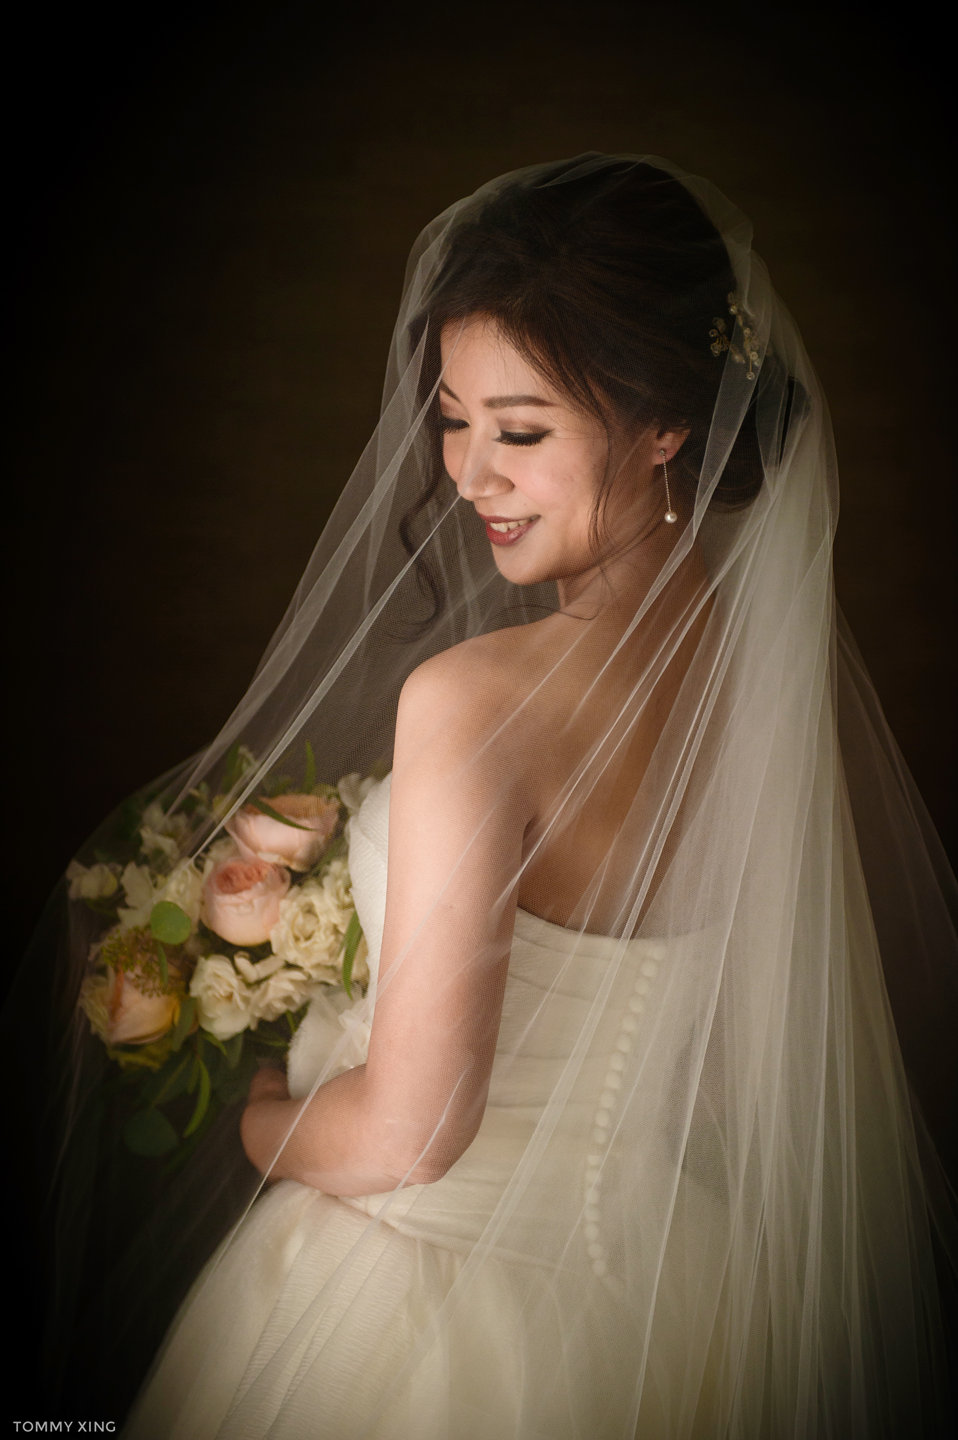 Wayfarers chapel Wedding Photography Ranho Palos Verdes Tommy Xing Photography 洛杉矶玻璃教堂婚礼婚纱照摄影师074.jpg